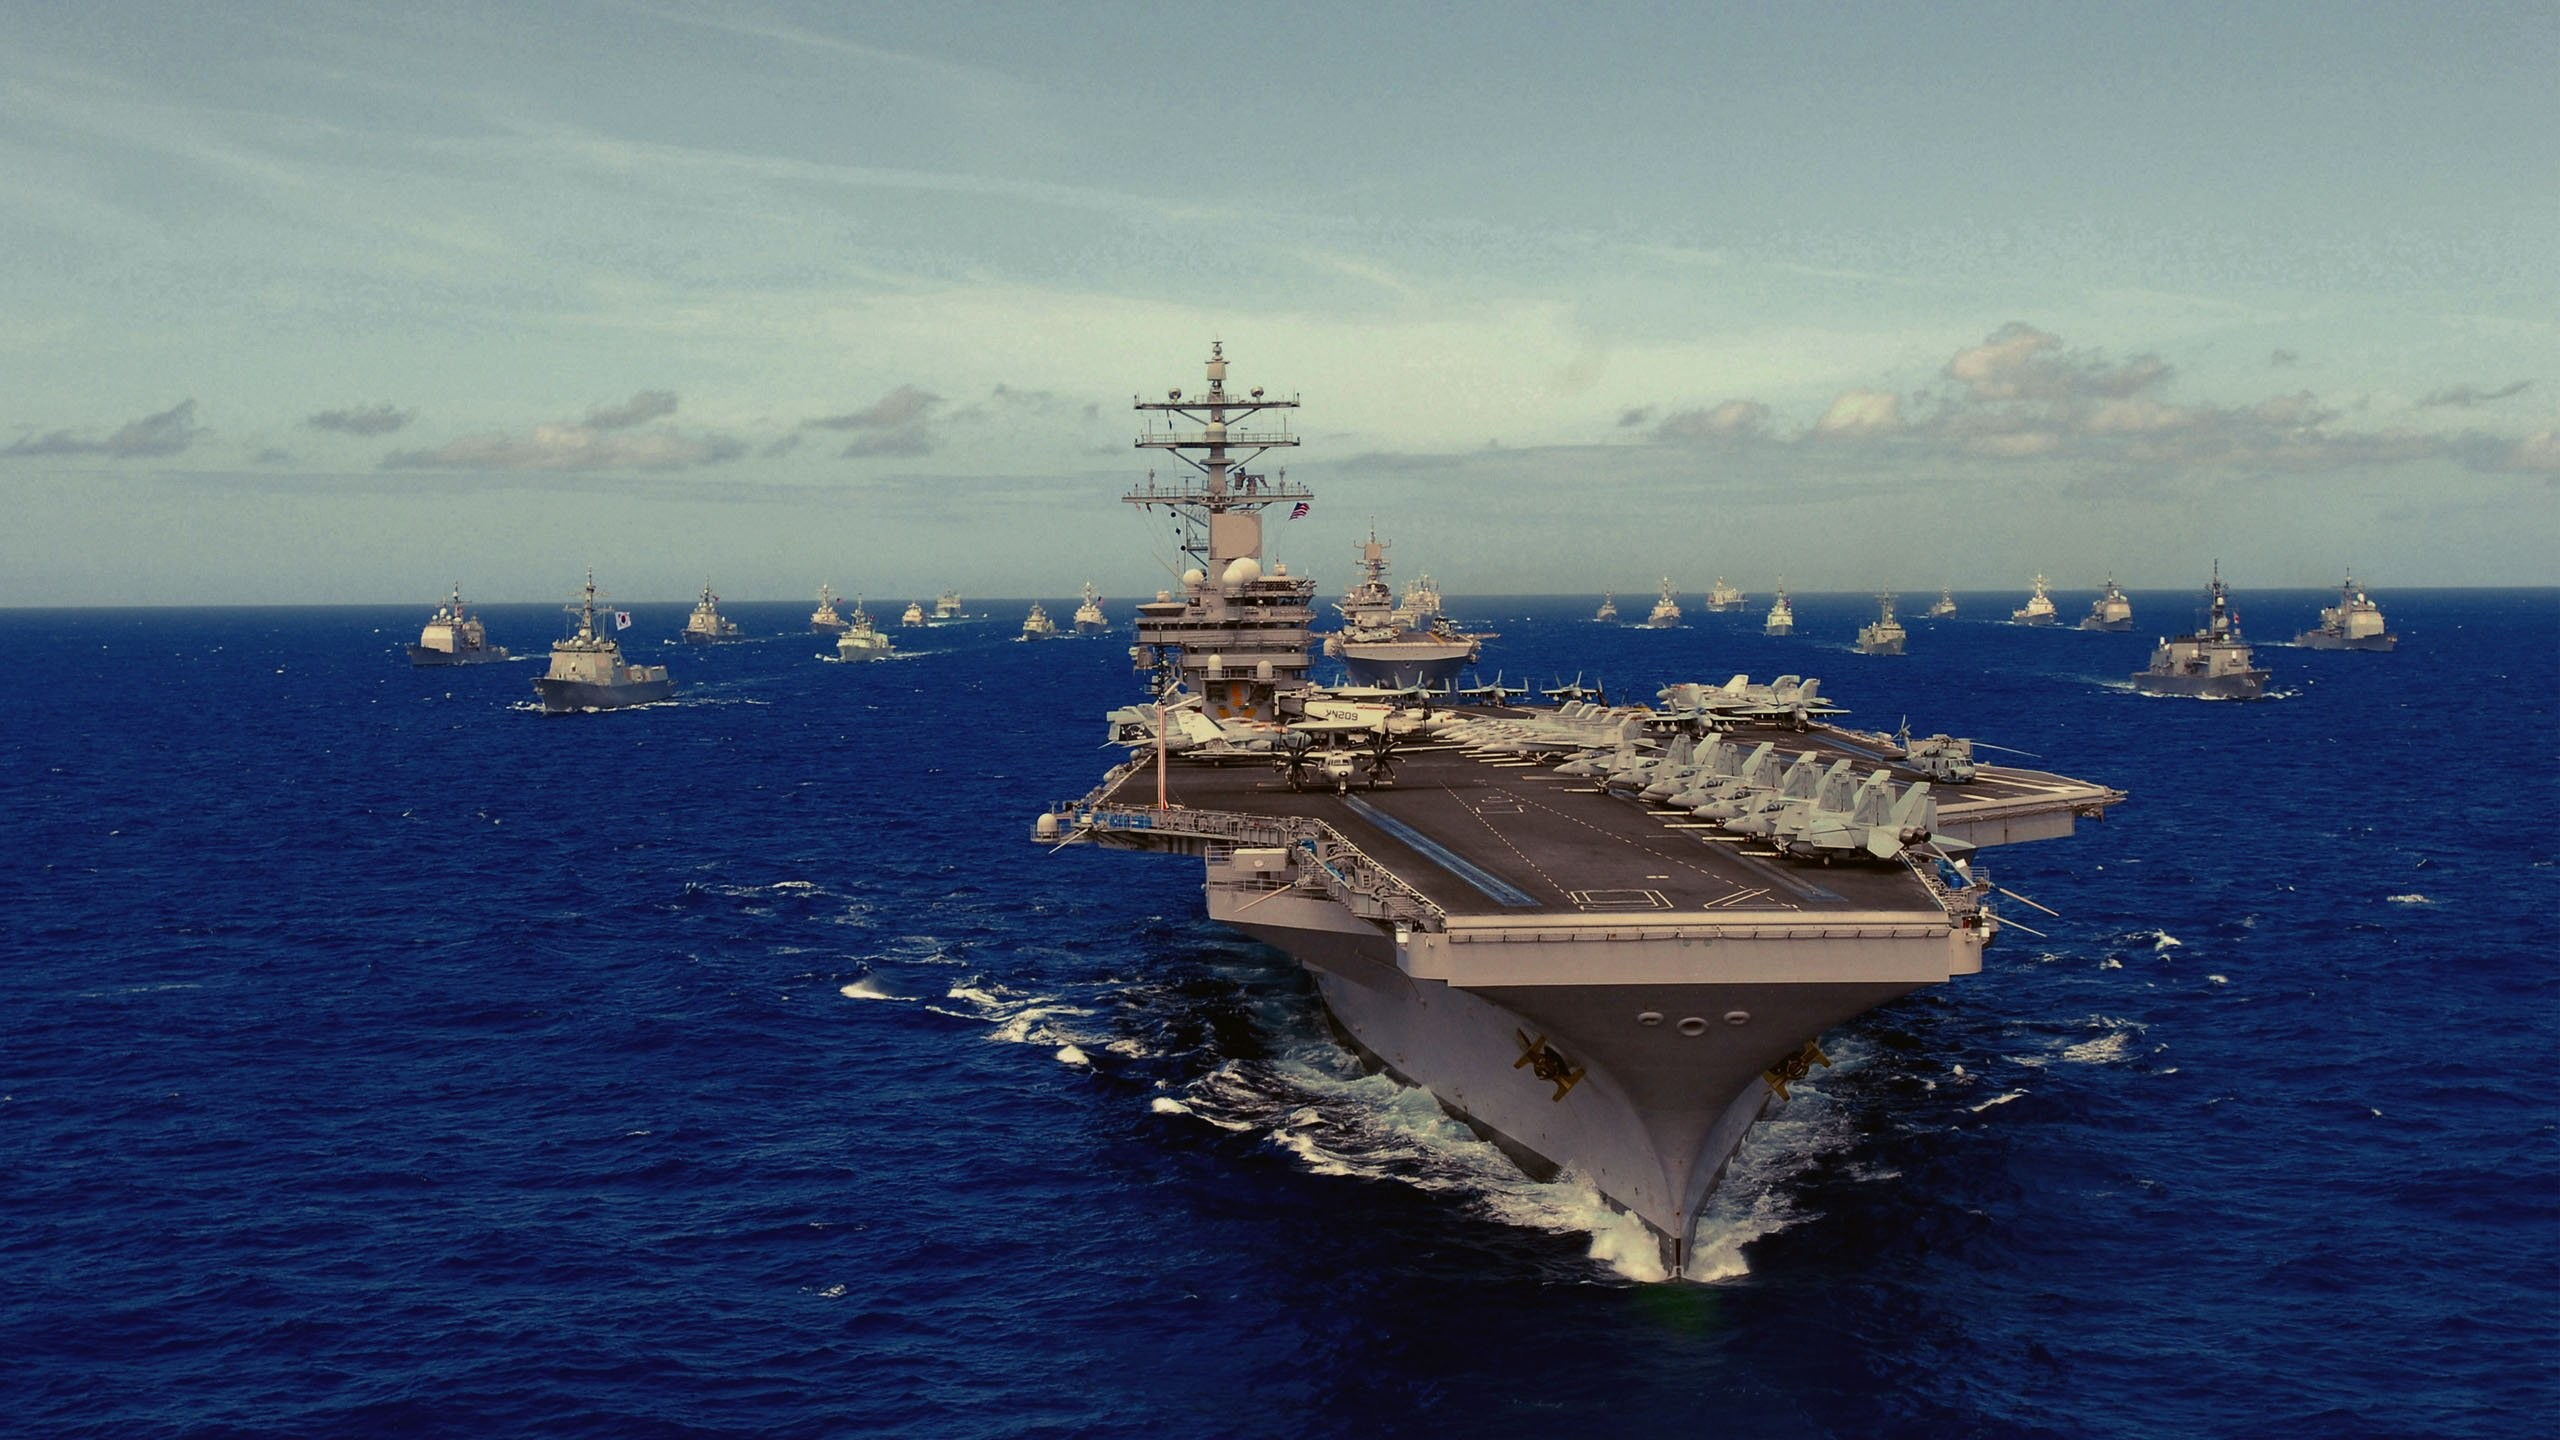 United States Navy wallpapers   hd widescreen wallpapers right click the  wallpaper select set as .